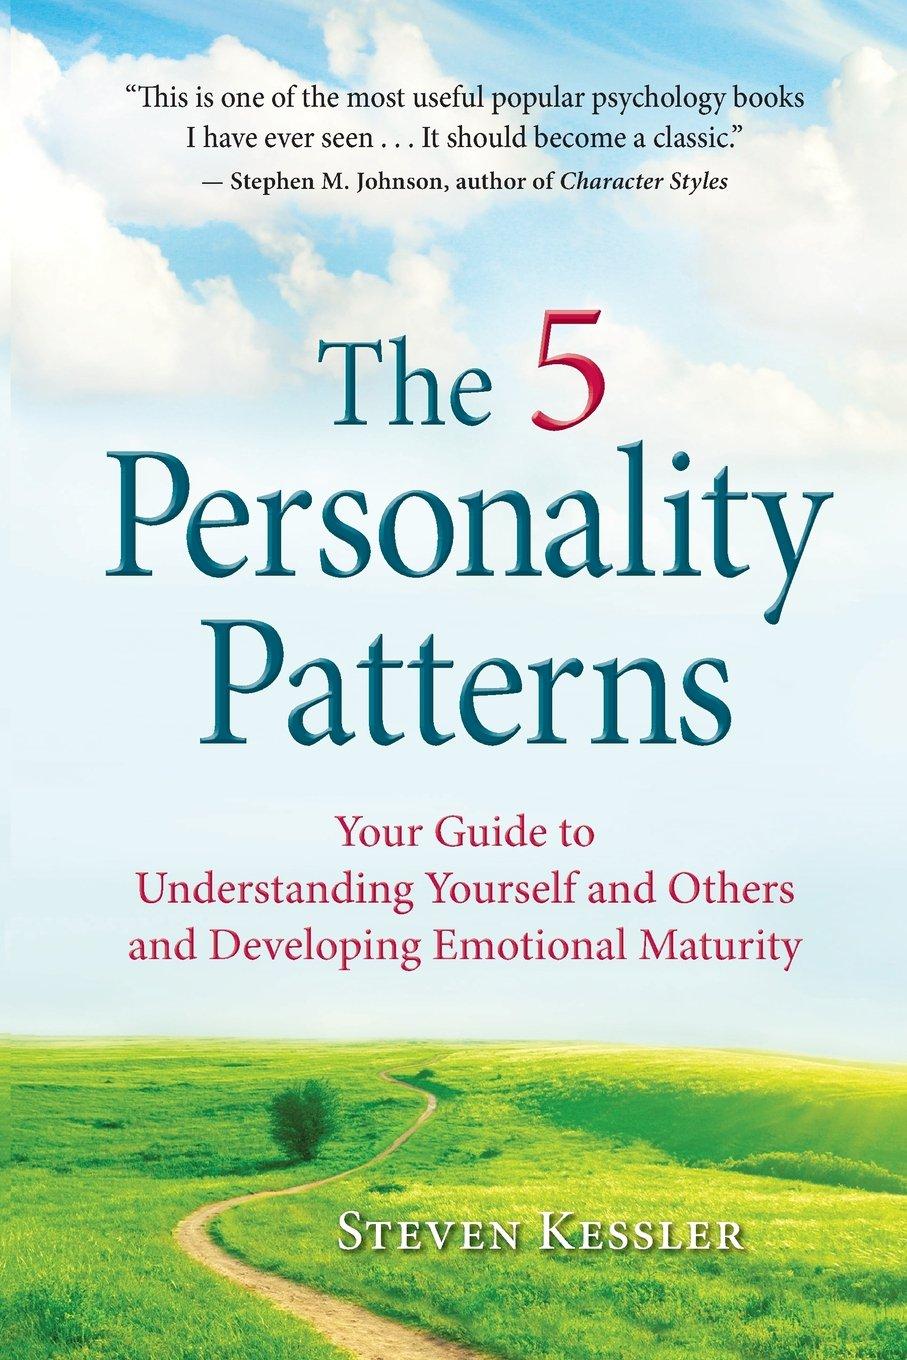 Amazon: The 5 Personality Patterns: Your Guide To Understanding  Yourself And Others And Developing Emotional Maturity (9780996343909):  Steven Kessler: